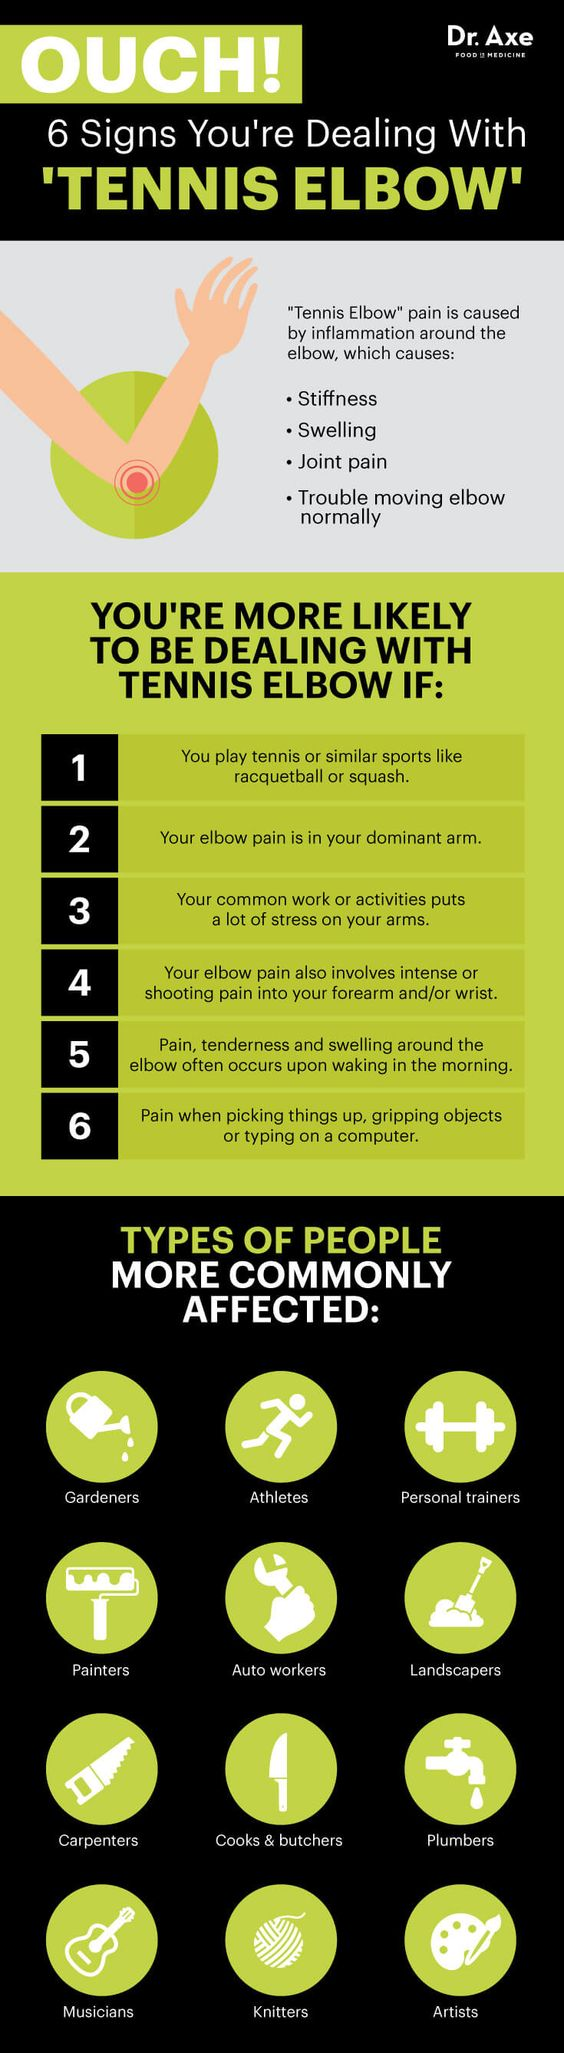 Signs you are dealing with tennis elbow